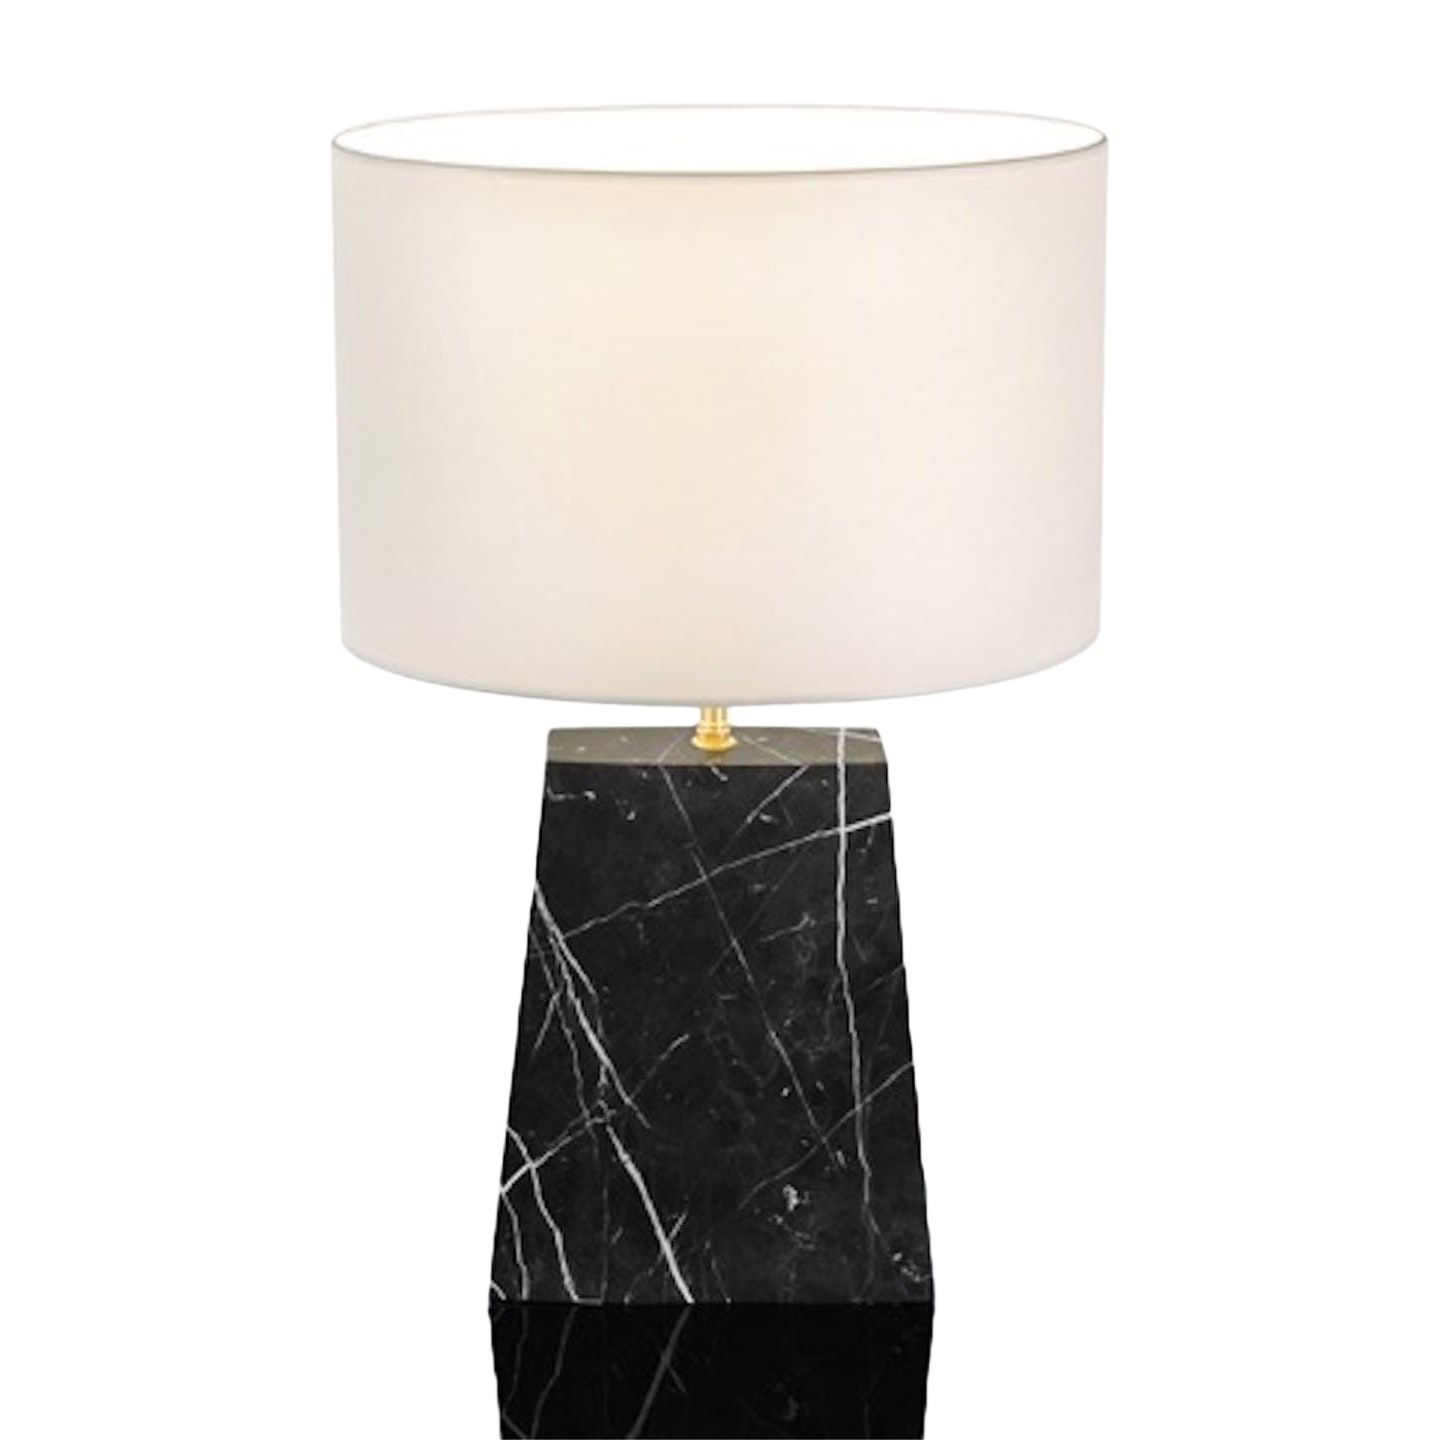 The Noe Table Lamp By Julian Barrault Lamp Desk Lamps Desk Light